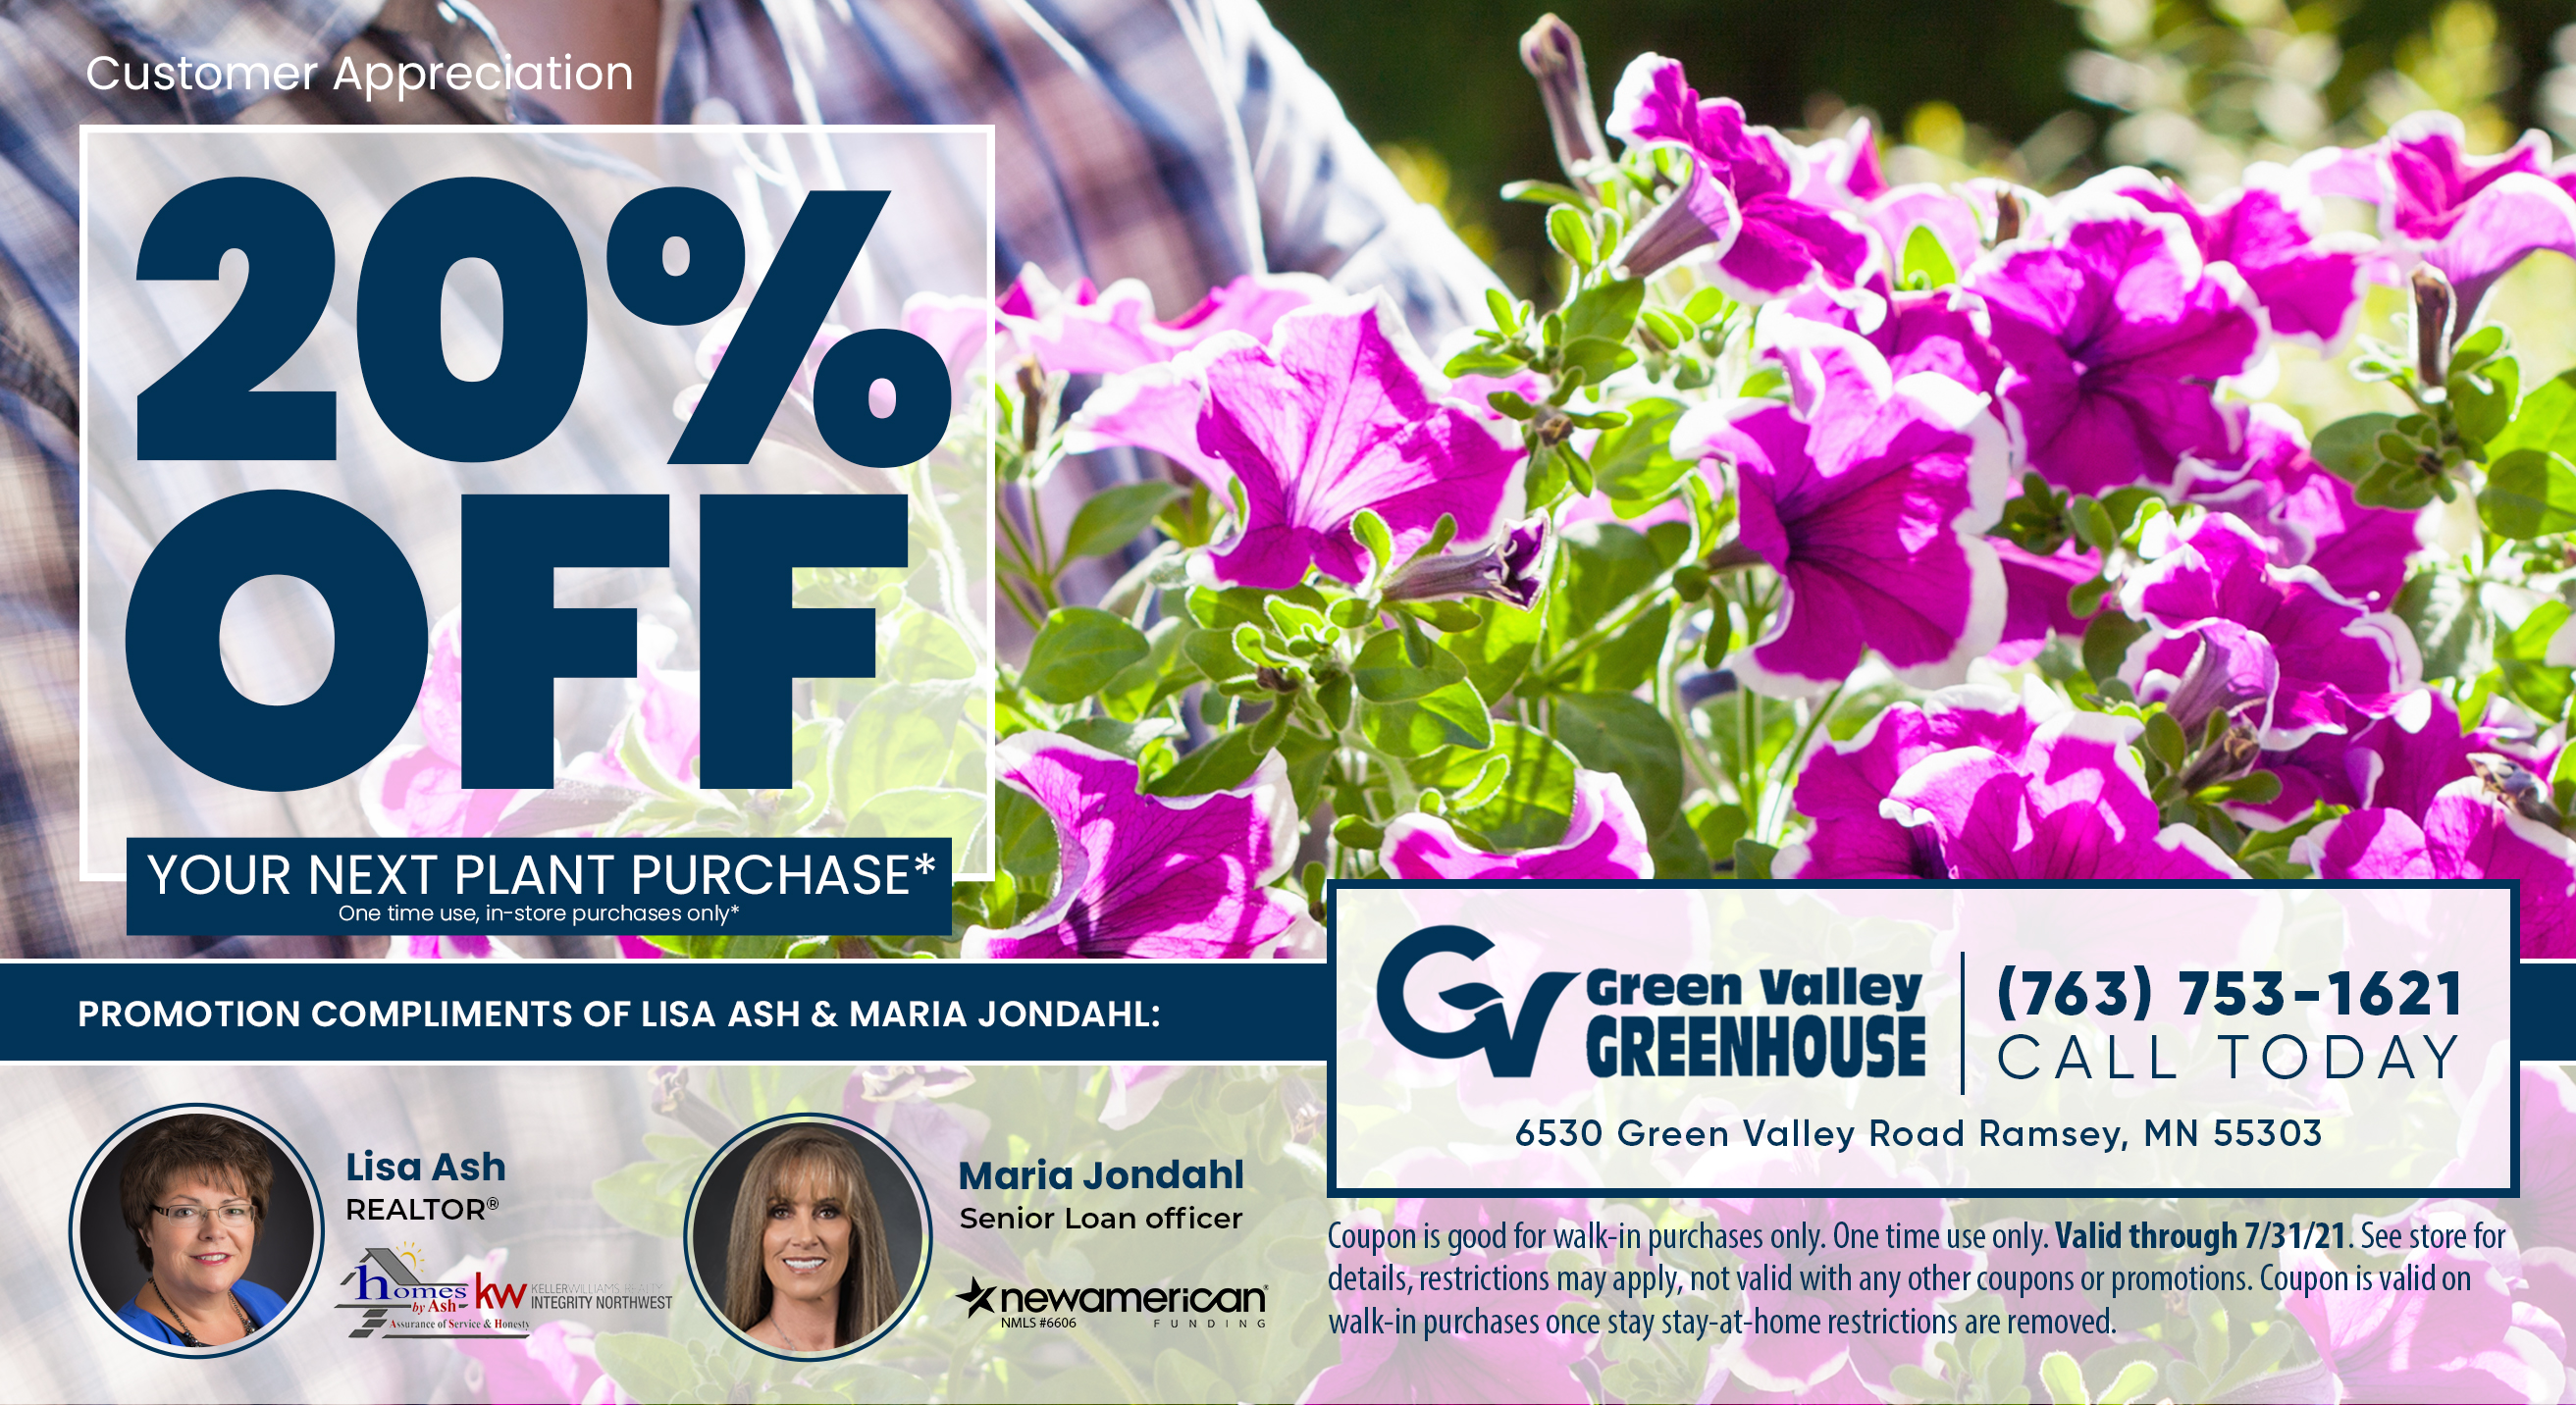 Green Valley Greenhouse Promotion 2021